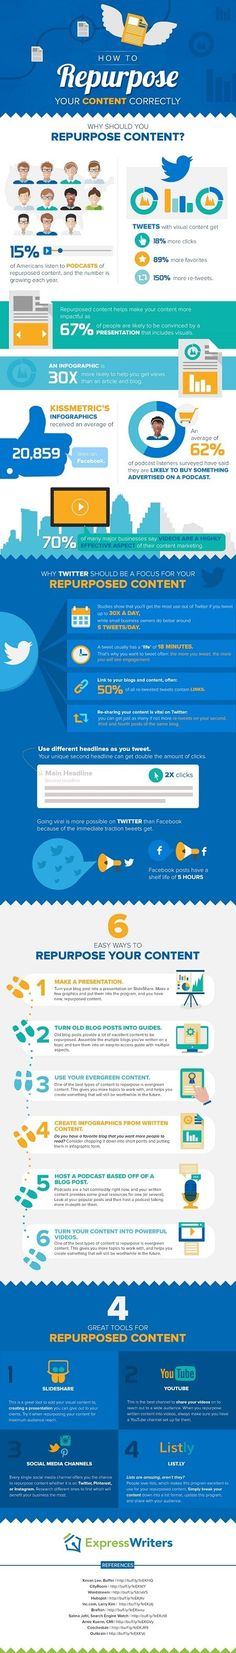 Content - How to Repurpose Your Content Correctly [Infographic] : MarketingProfs Article